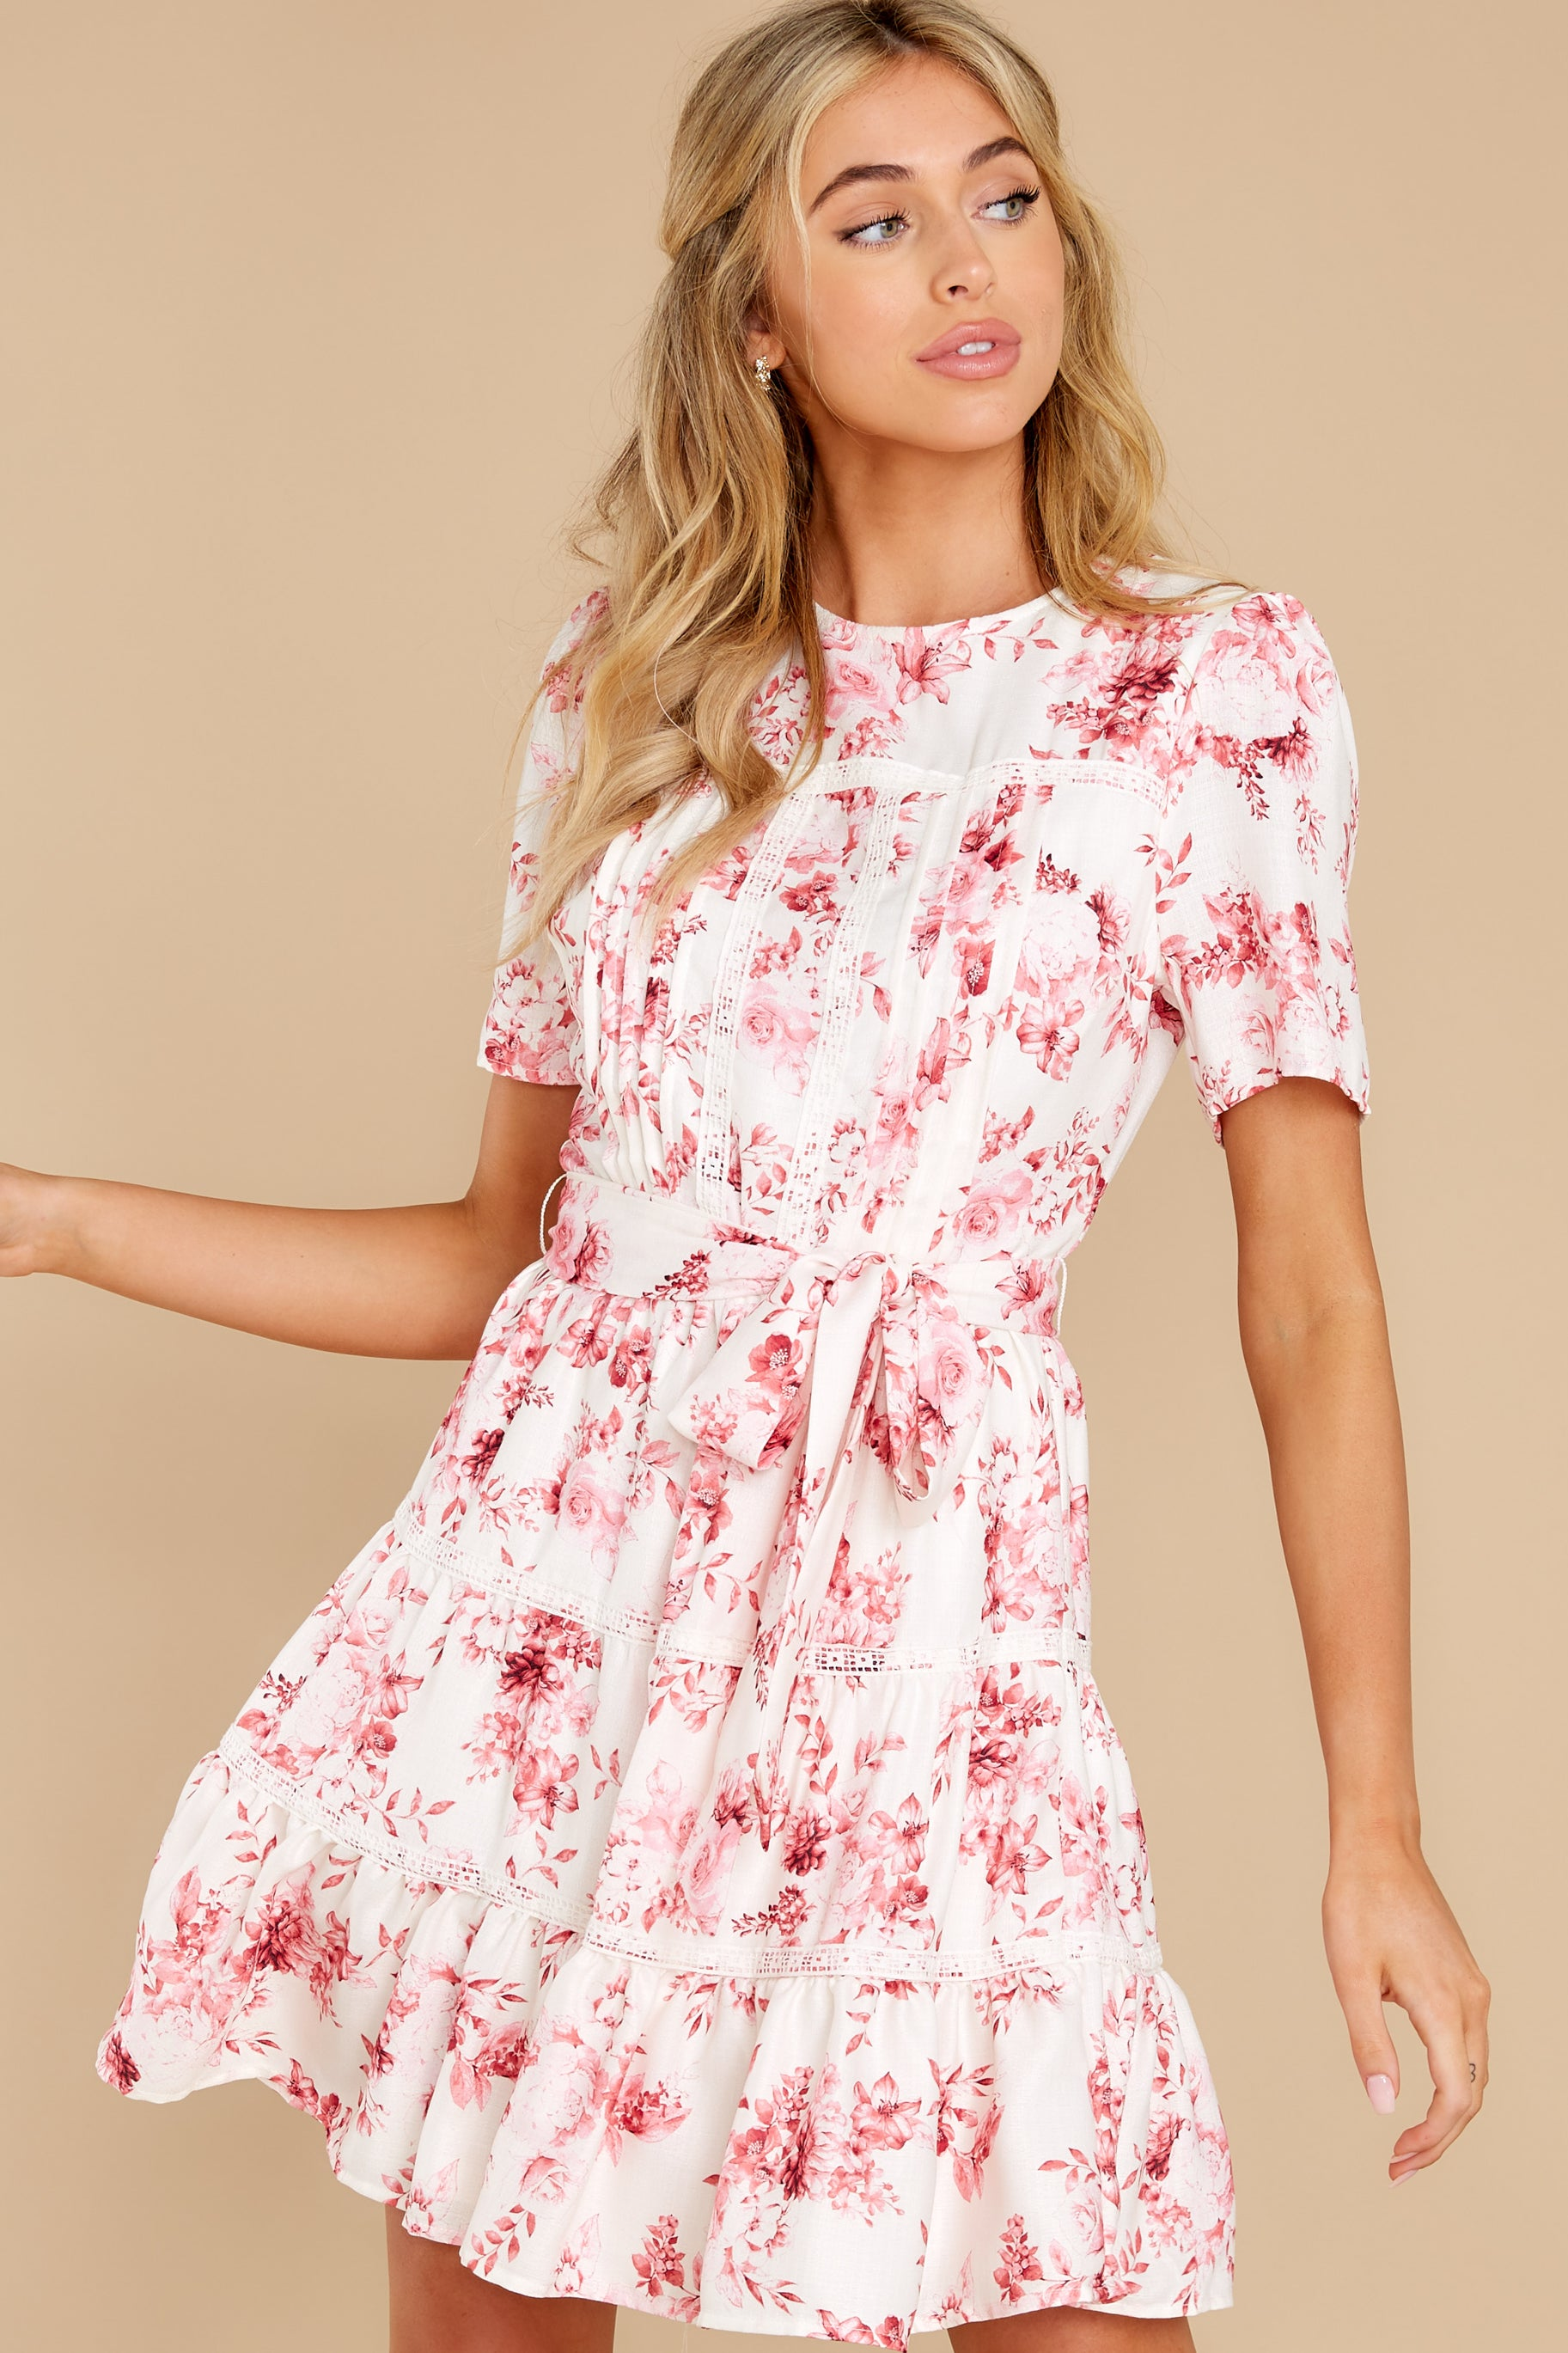 5 Curious Hearts Pink Floral Print Dress at reddress.com